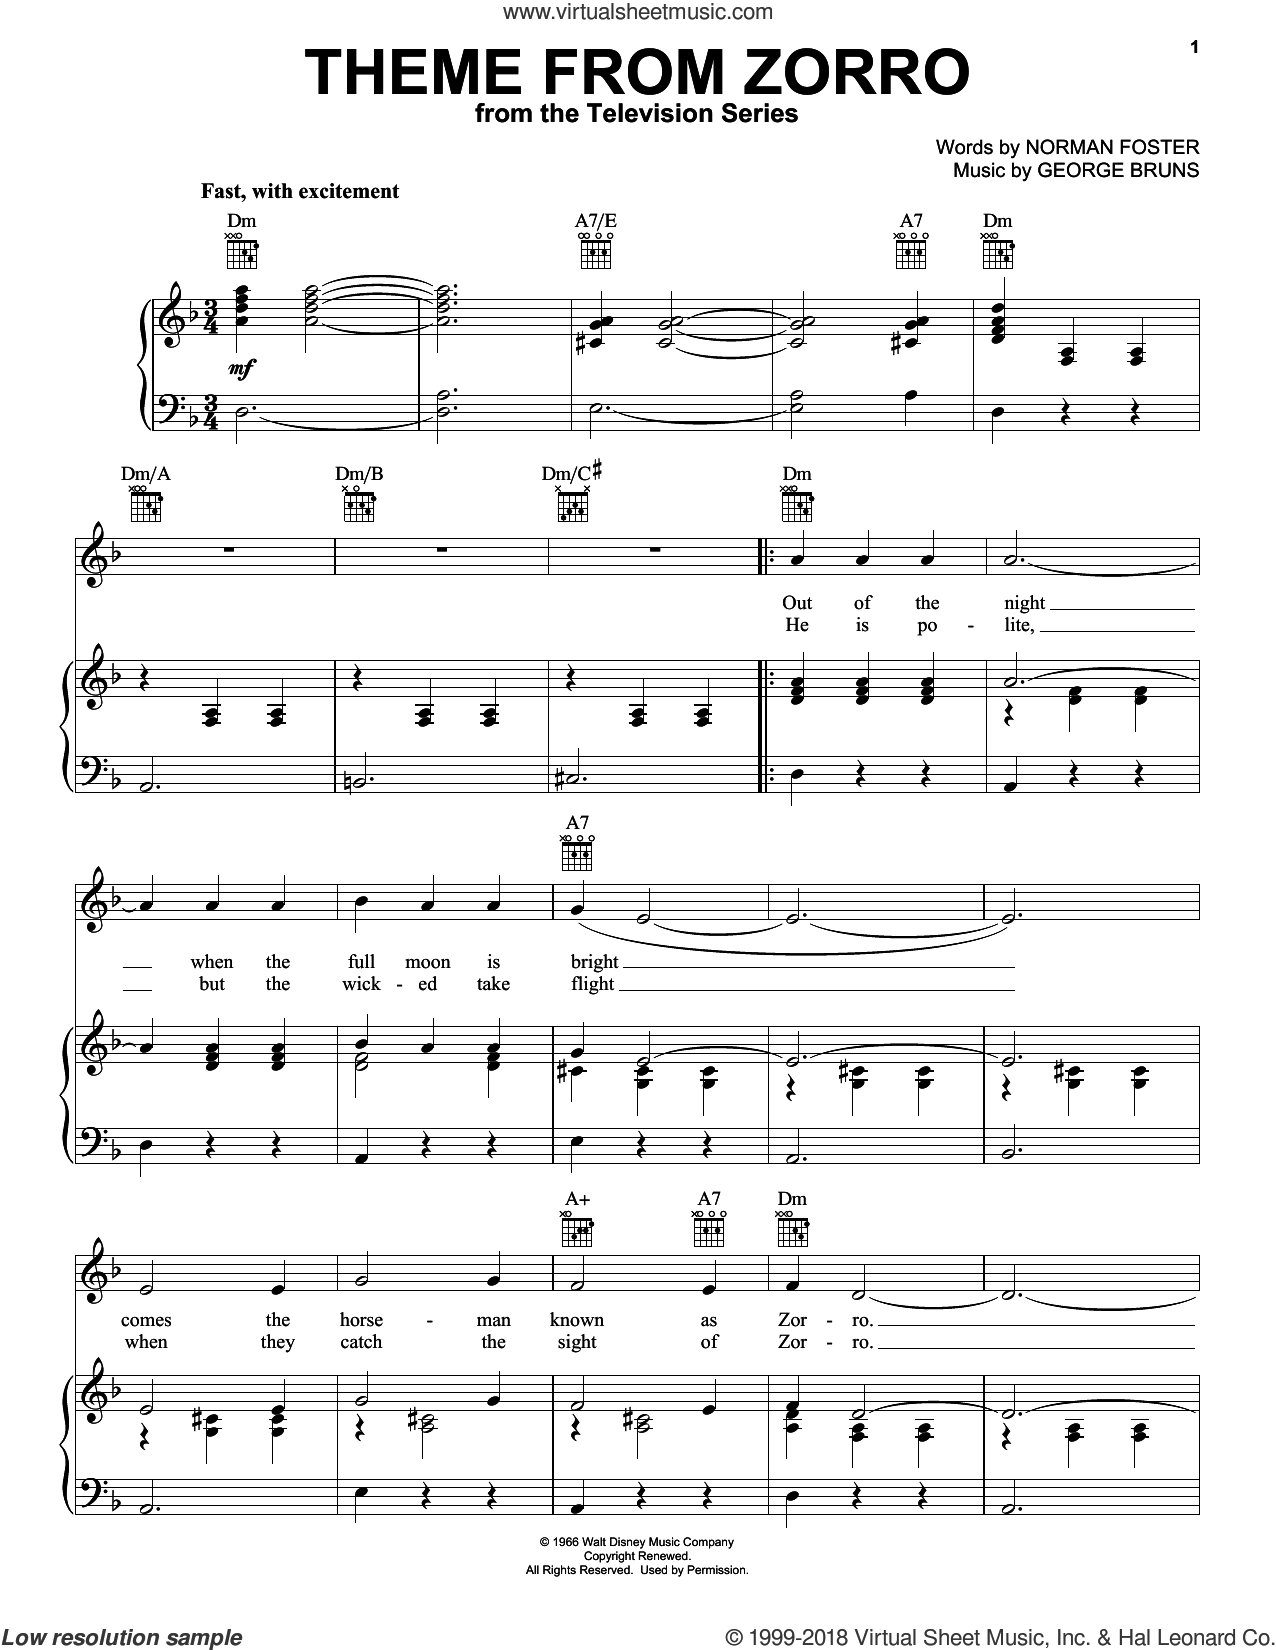 Theme From Zorro sheet music for voice, piano or guitar by Norman Foster and George Bruns, intermediate. Score Image Preview.